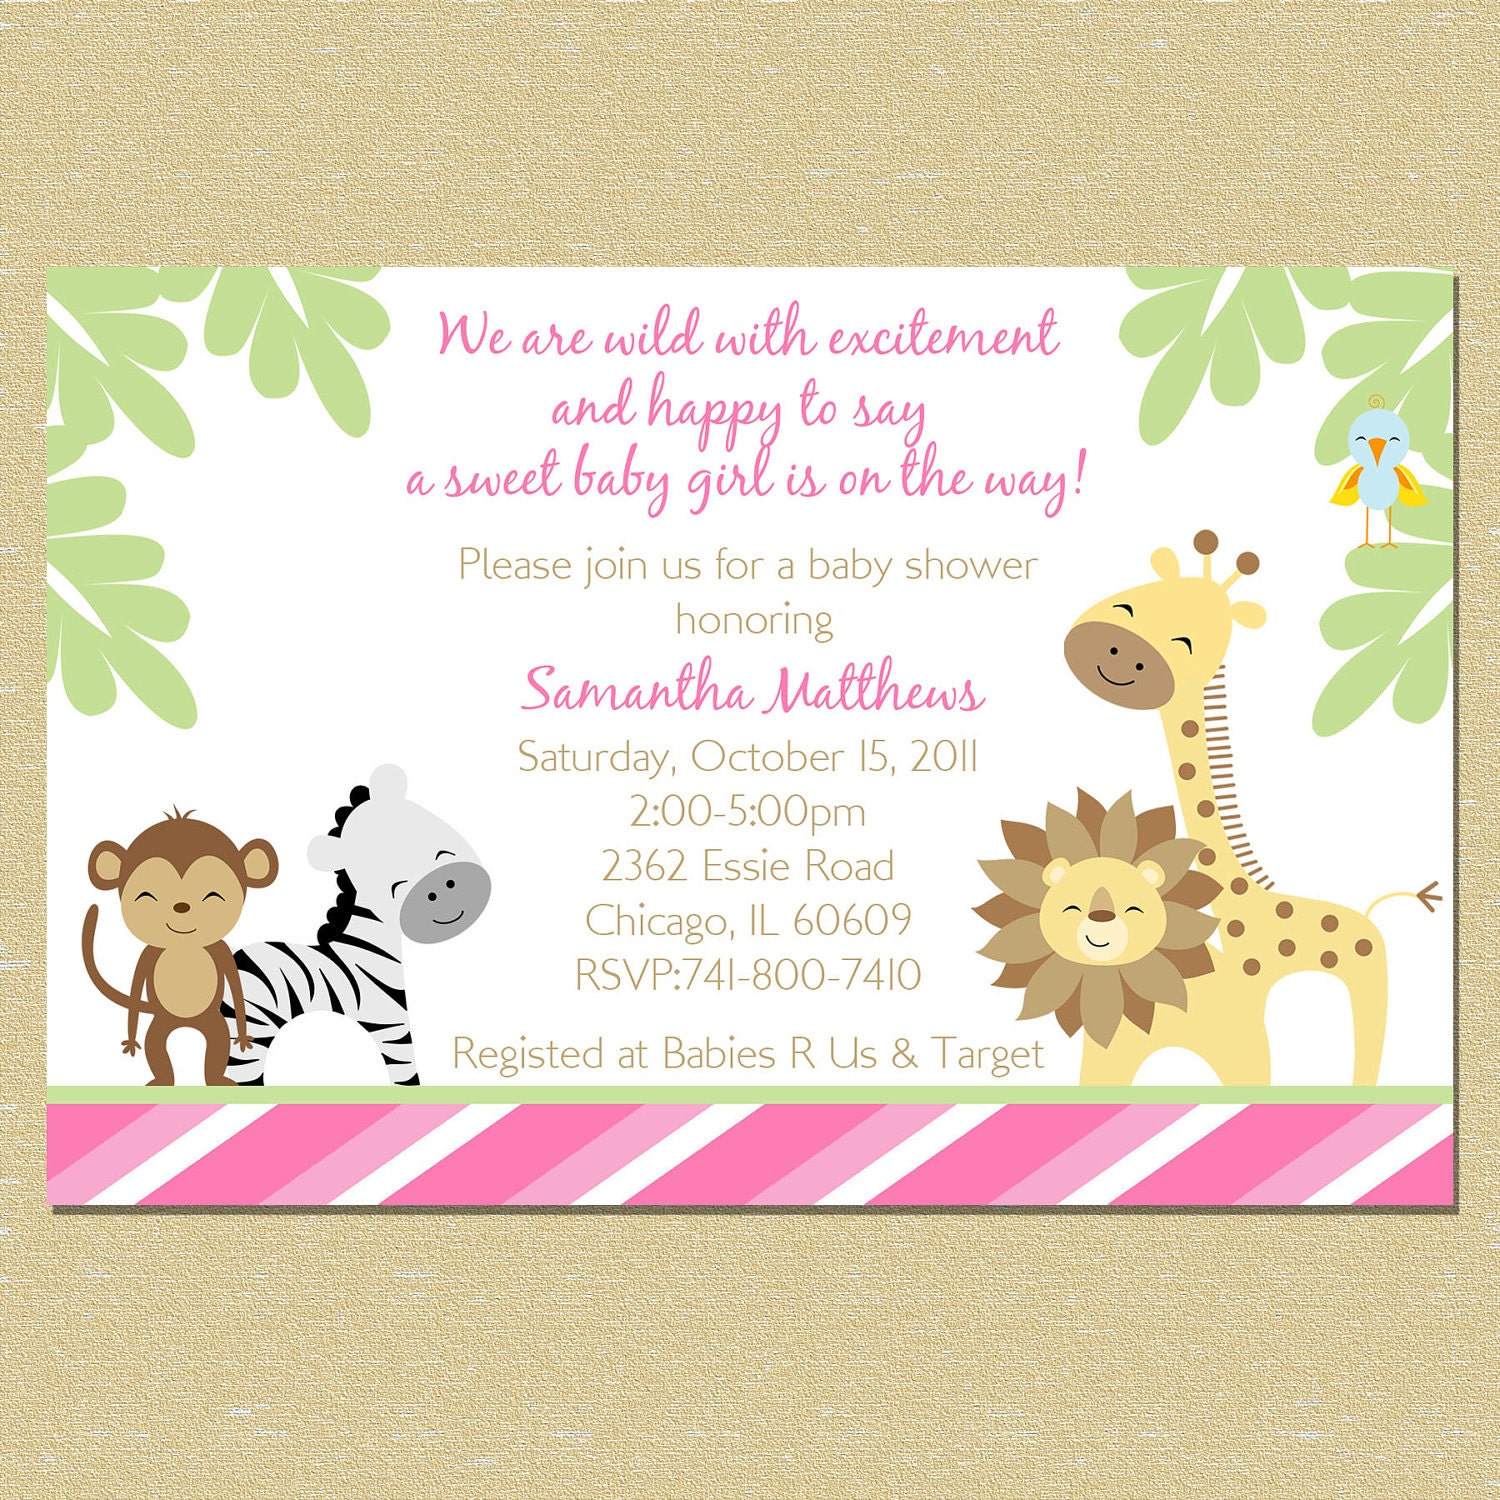 watch more like jungle baby shower invitations templates, Baby shower